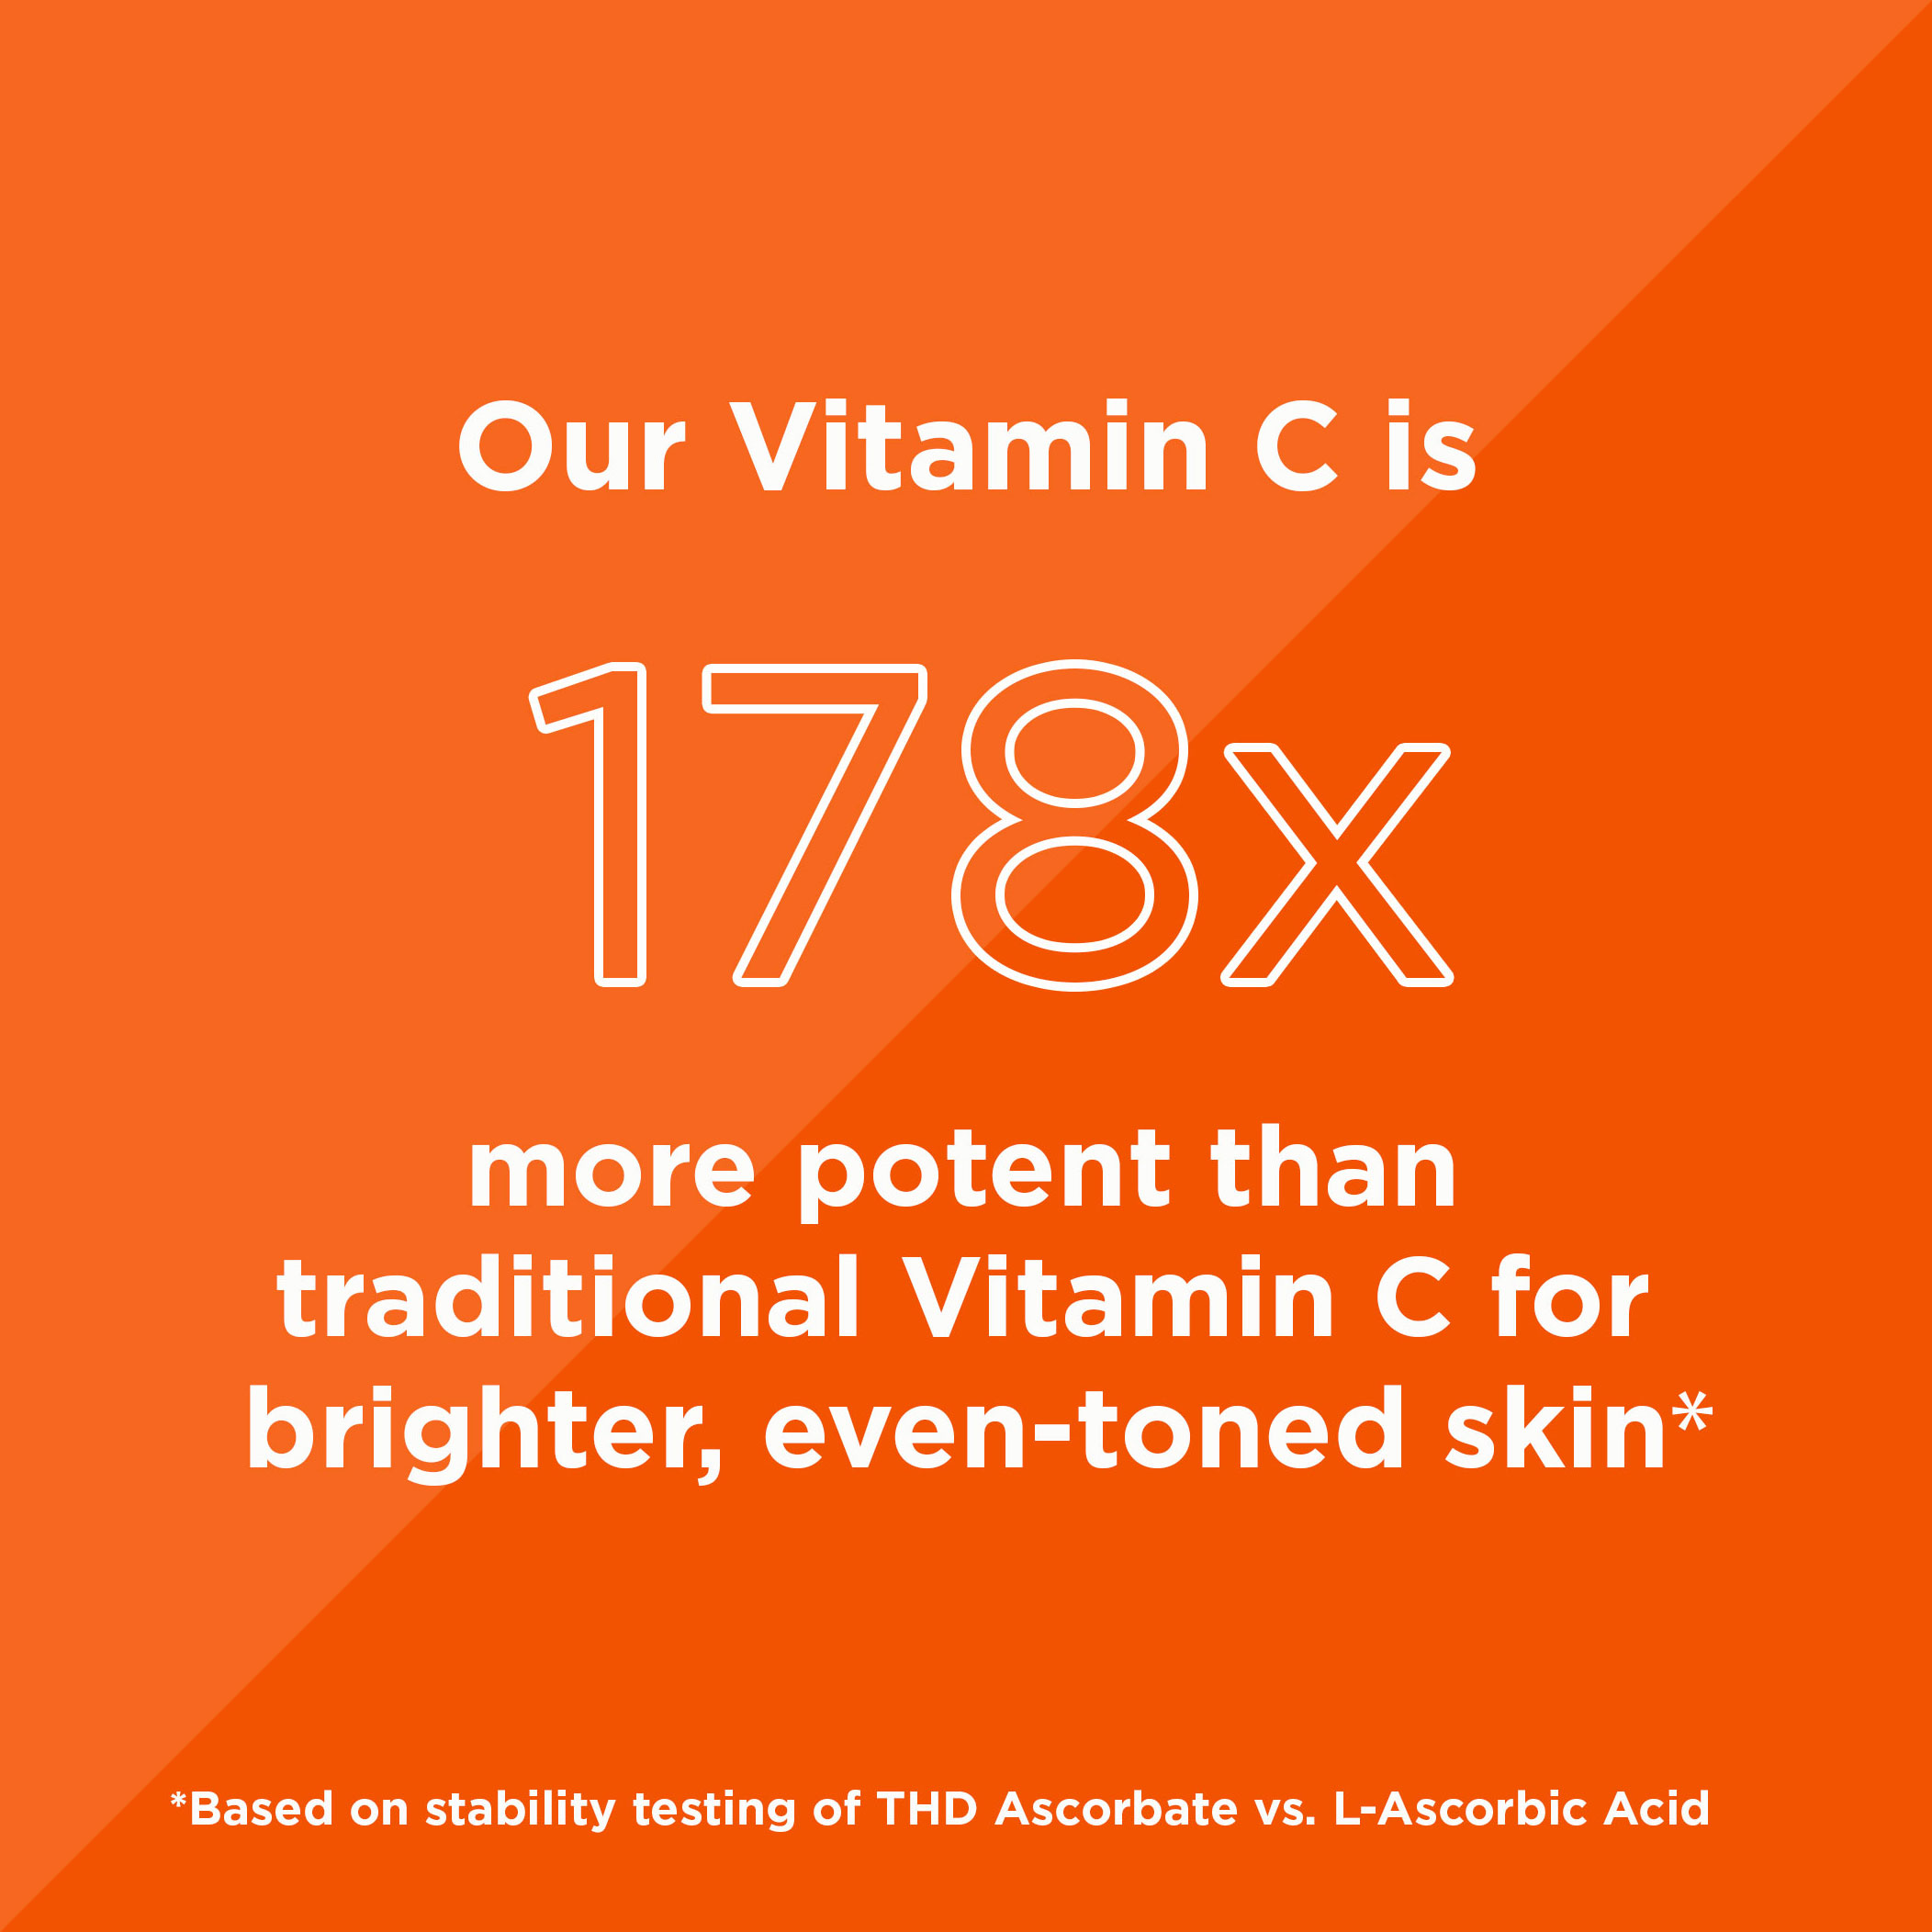 Our Vitamin C is 178x more potent than traditional Vitamin C for brighter, even-toned skin based on stability testing of THD Ascorbate vs L-Ascorbic Acid